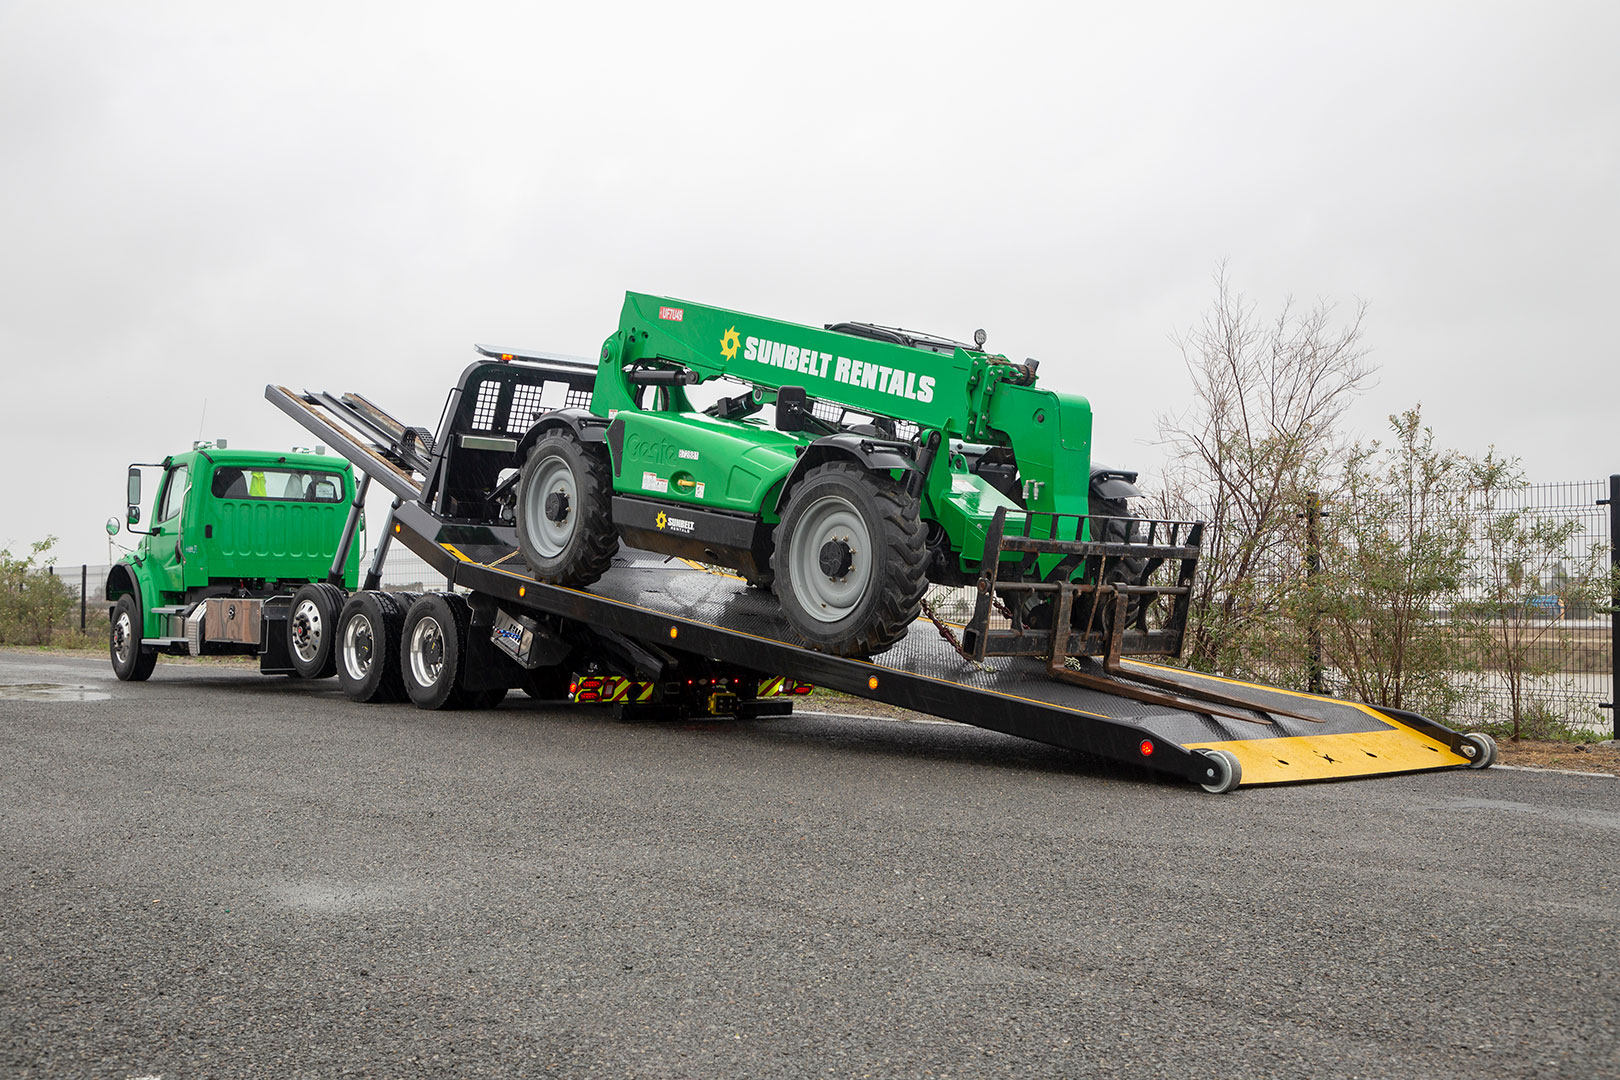 titan zla on green Freightliner m2 chassis bed at angle loaded with equipment